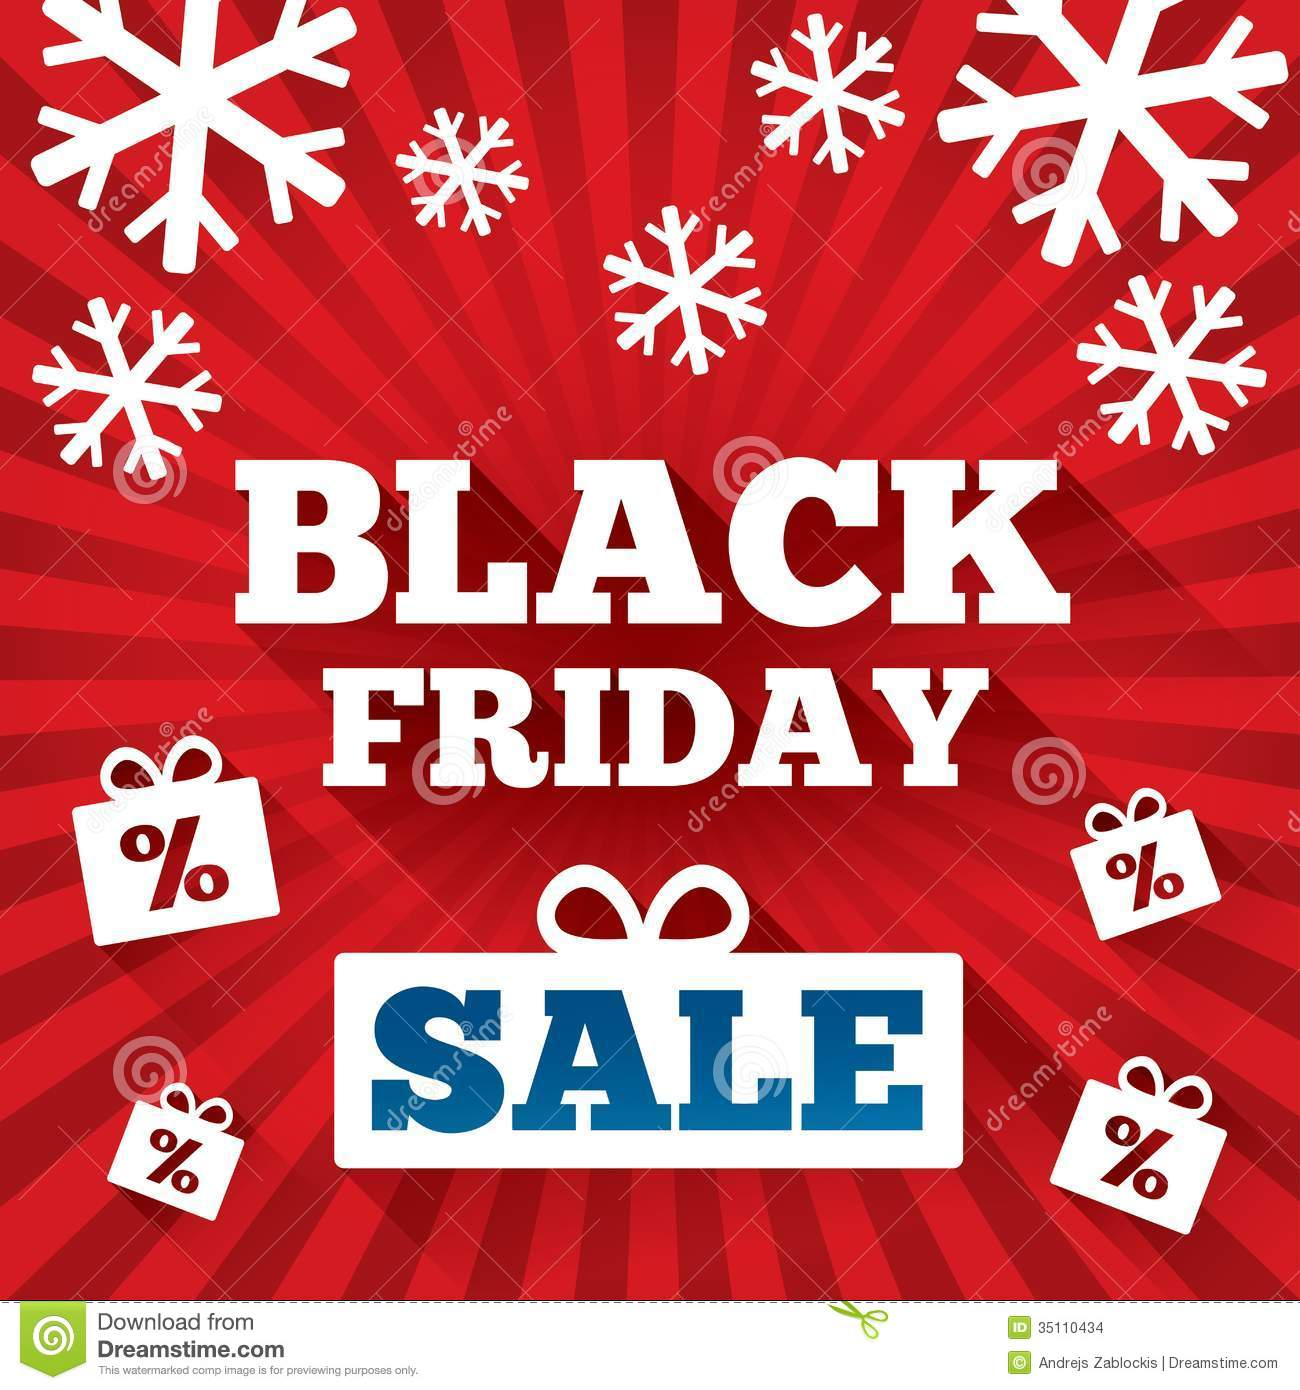 Black Friday Sale Background Christmas Background Stock. Christmas Outdoor Decorations Candy Canes. How To Make Light Up Christmas Decorations. Christmas Decorations For A Large Wall. Make Your Own Christmas Decorations Uk. Snowman And Snowdog Christmas Decorations. Paper Mache Christmas Decorations Ideas. Christmas Decorations Ideas Bedroom. Christmas Table Decorations Blue And Silver